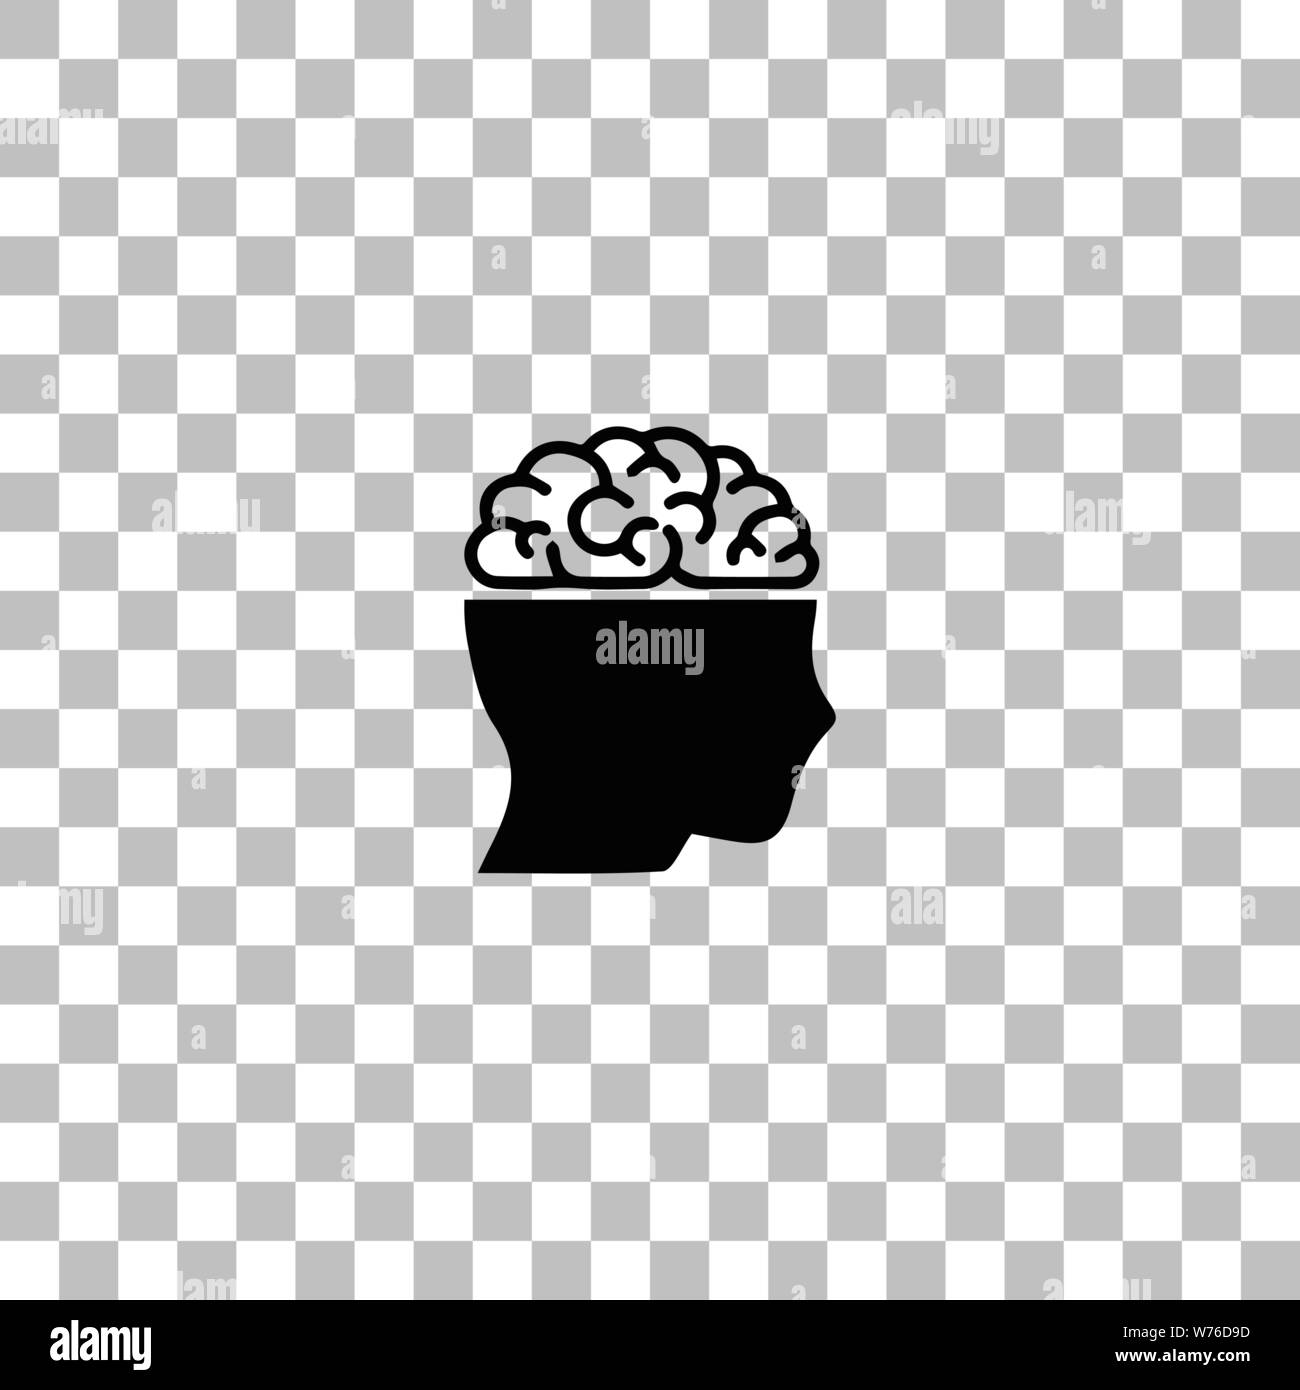 Human Brain Black Flat Icon On A Transparent Background Pictogram For Your Project Stock Vector Image Art Alamy Pngkit selects 92 hd human icon png images for free download. https www alamy com human brain black flat icon on a transparent background pictogram for your project image262600281 html